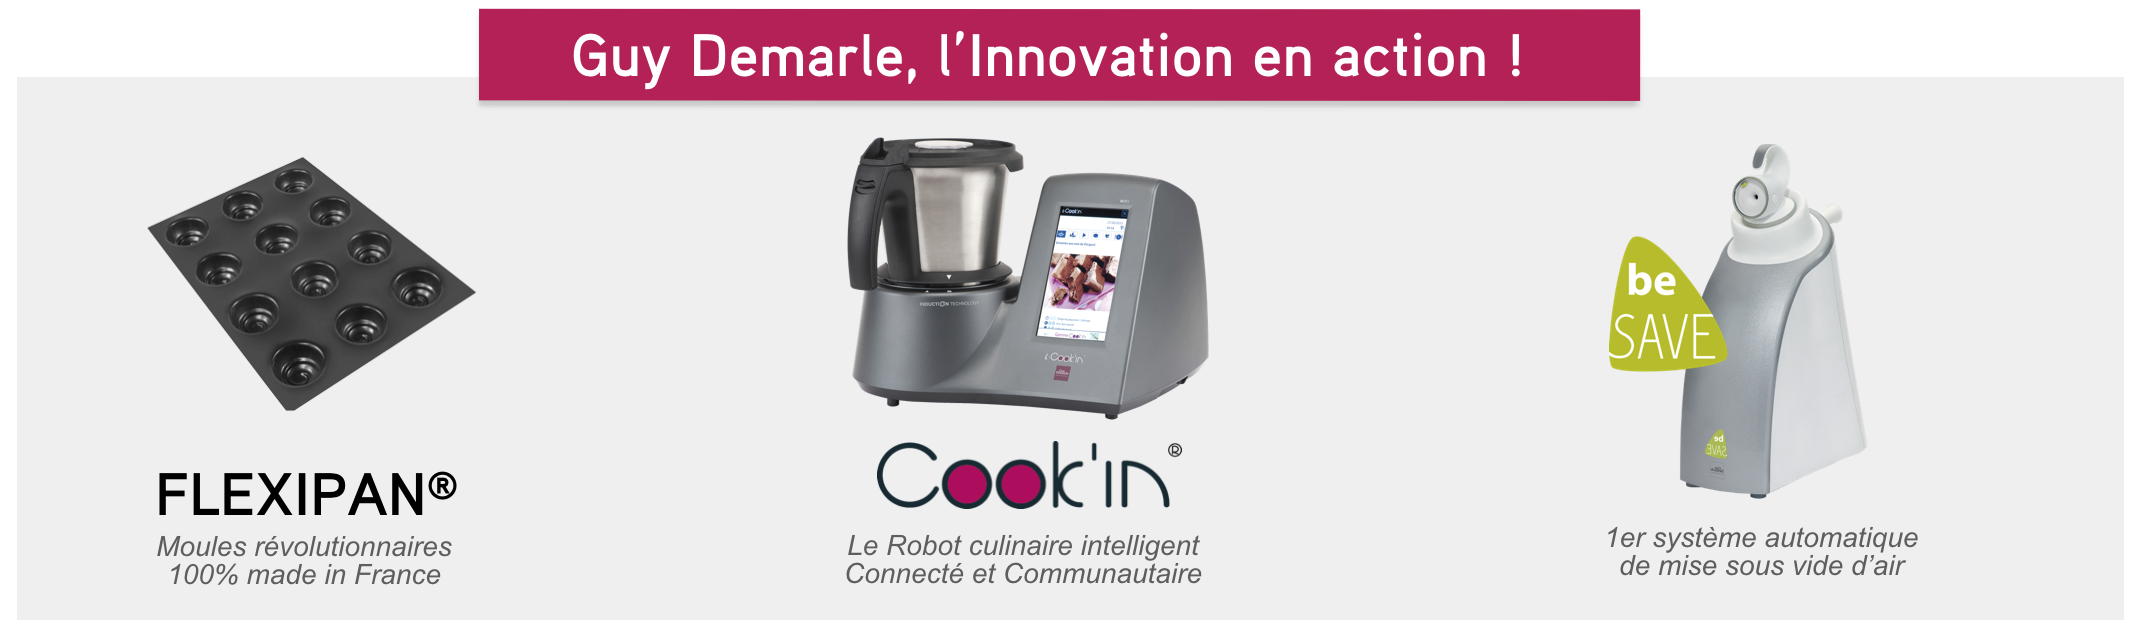 Guy Demarle, l'innovation en action !